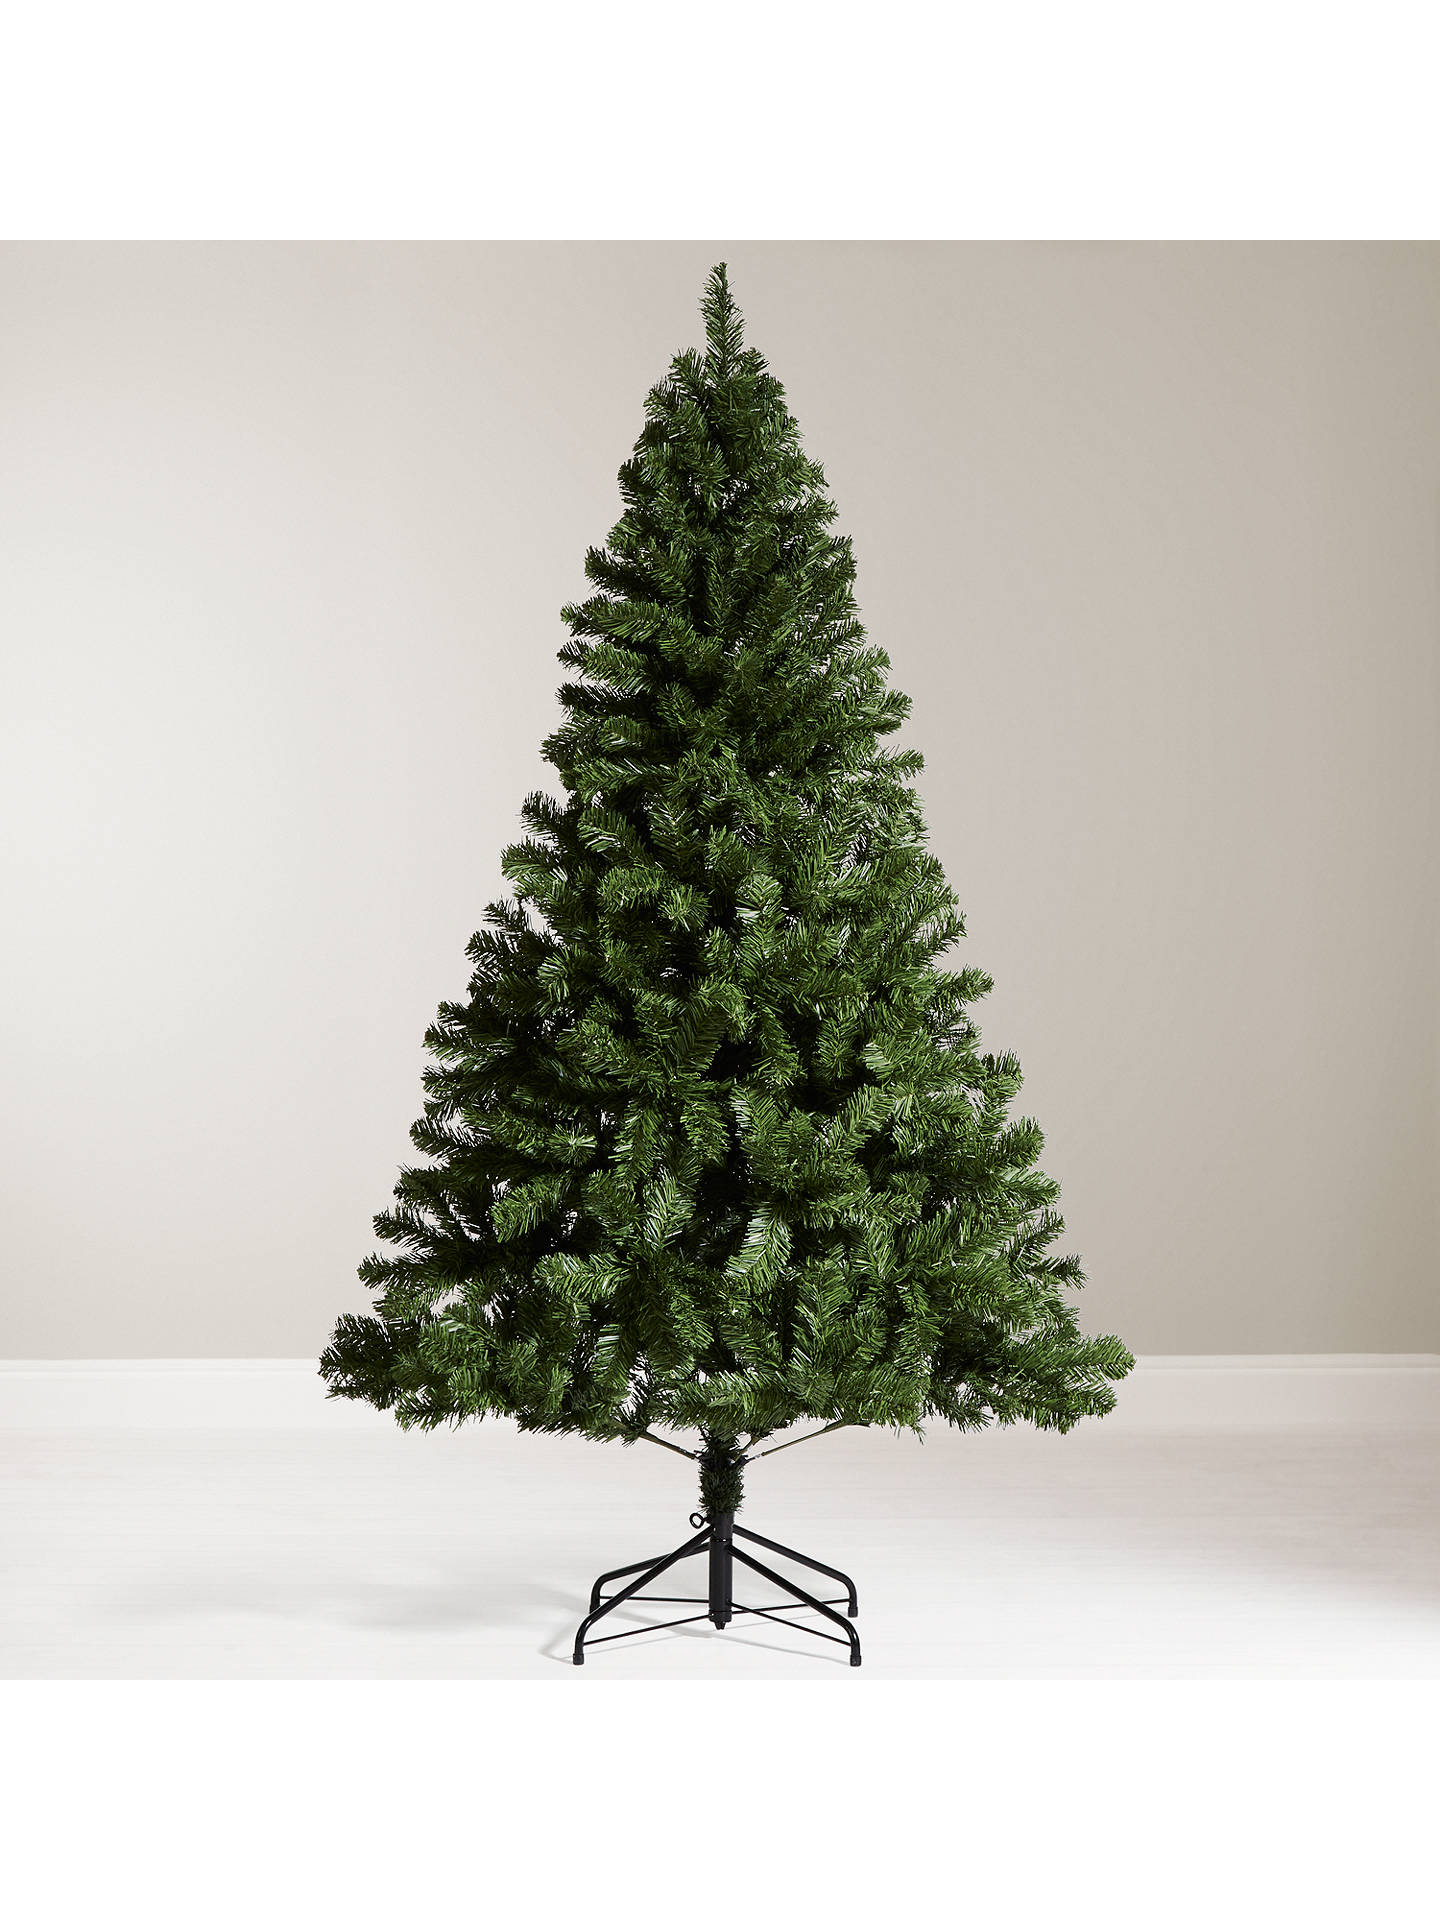 John Lewis The Basics Festive Fir Christmas Tree 6ft Online At Johnlewis